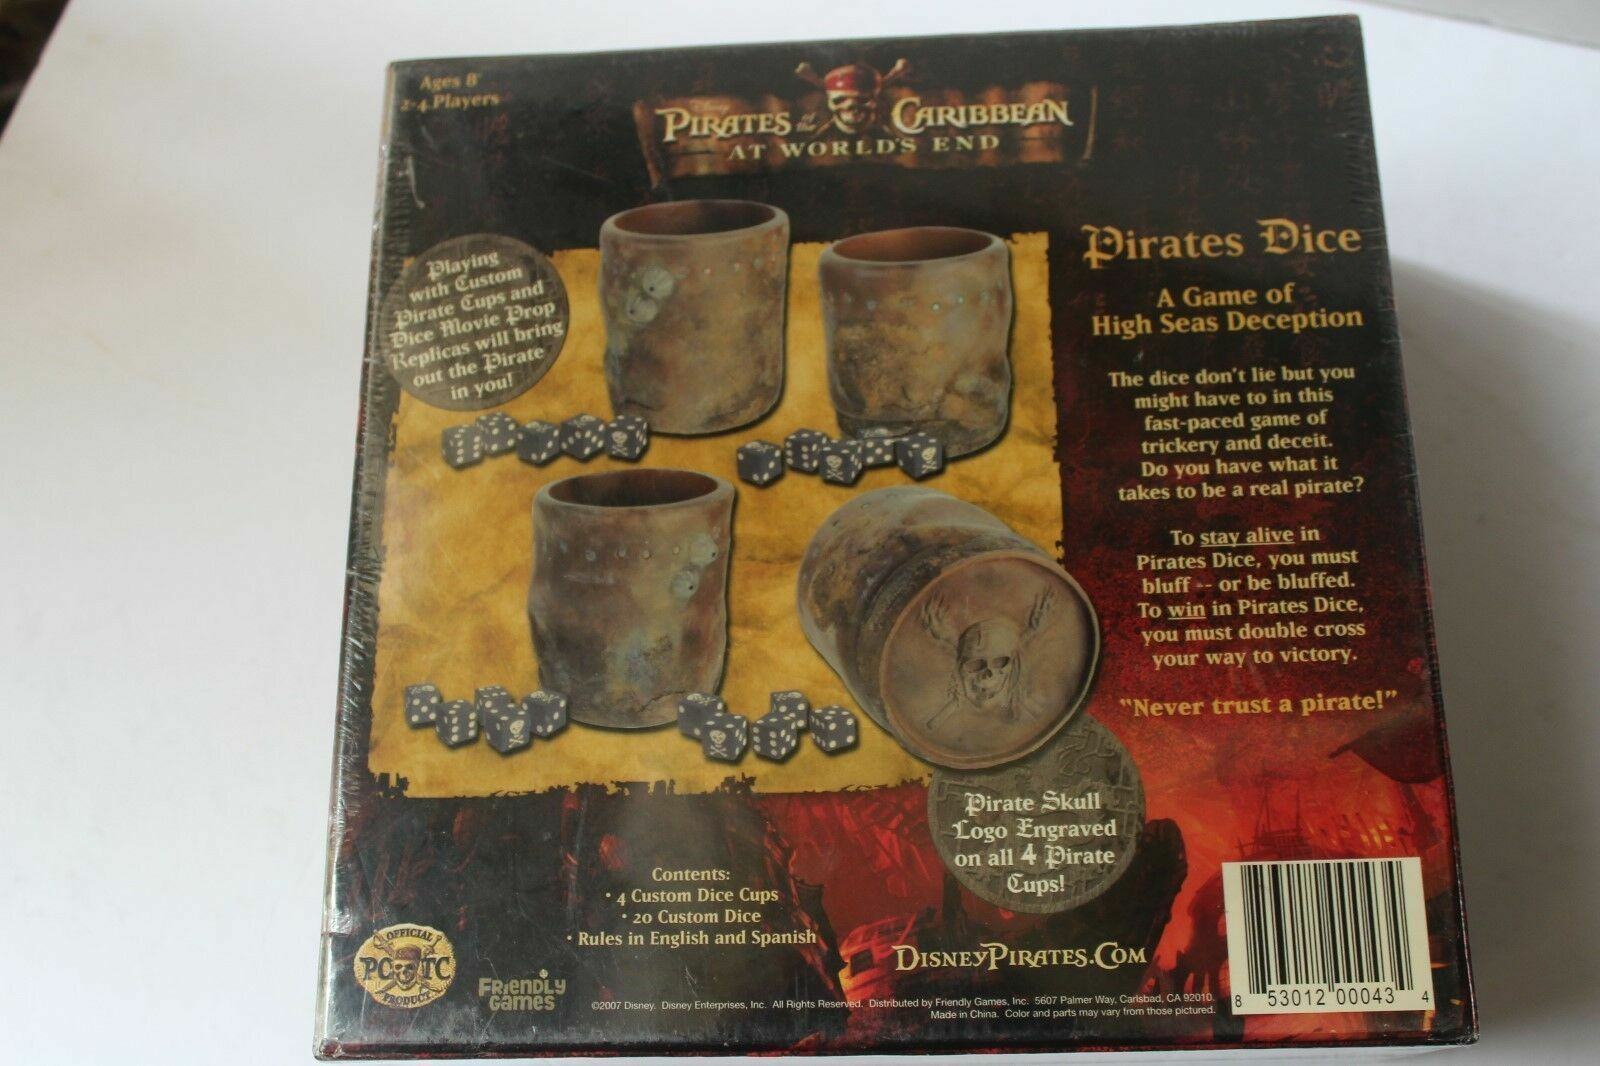 Pirates of the Caribbean DEAD MAN'S CHEST Pirates Dice Game Disney 2007 COMPLETE